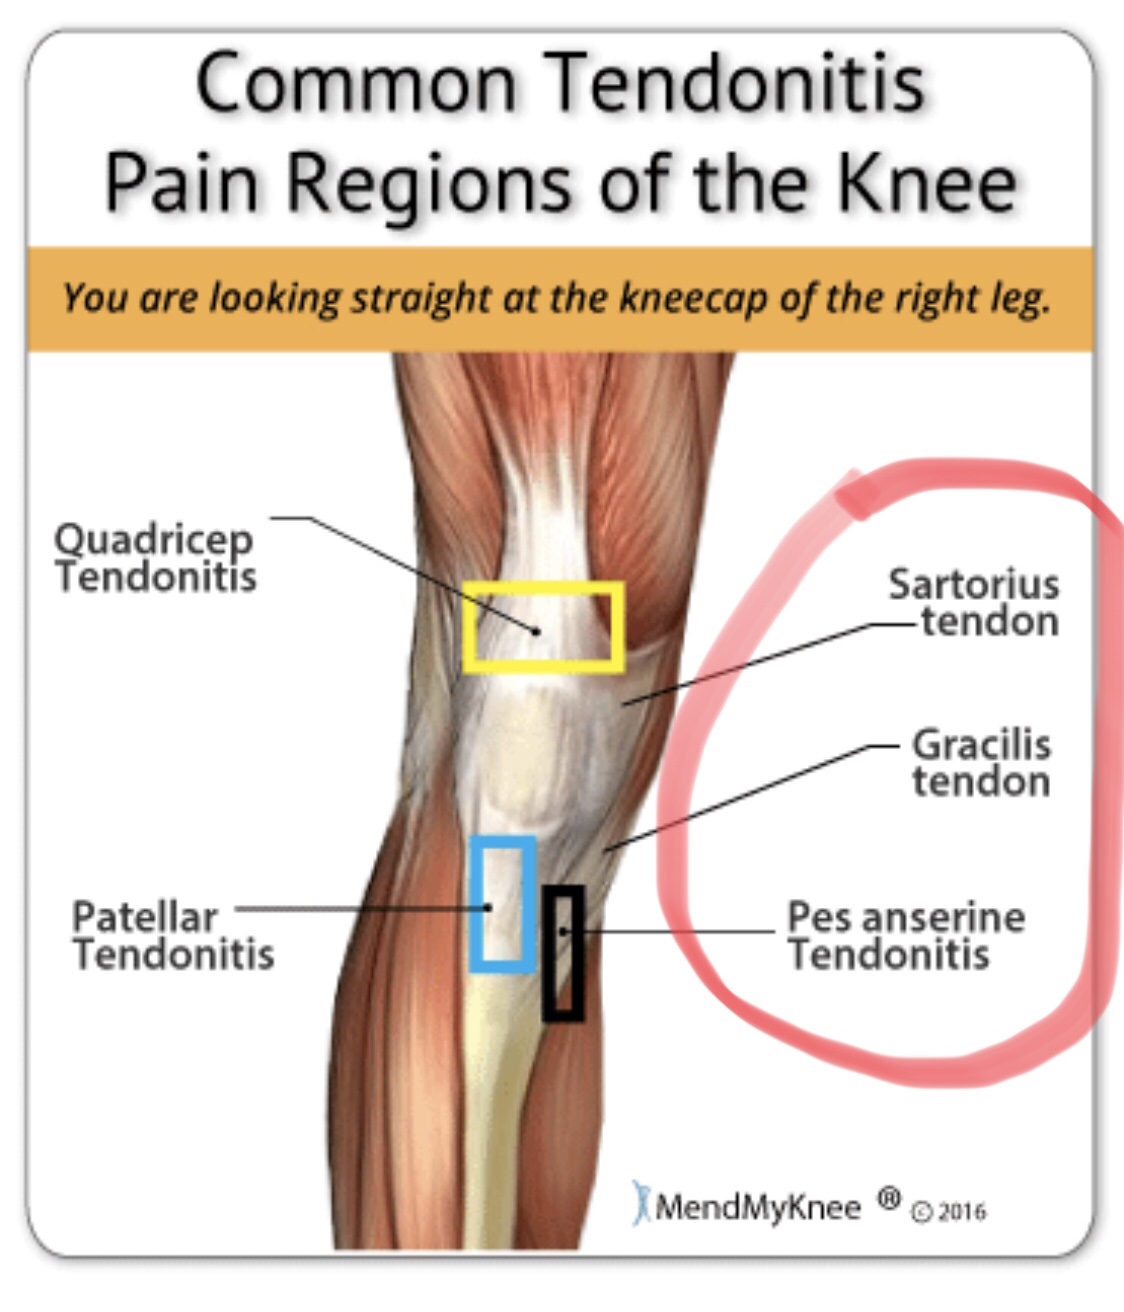 The circled tendons are angry at me  PC: mendmyknee.com